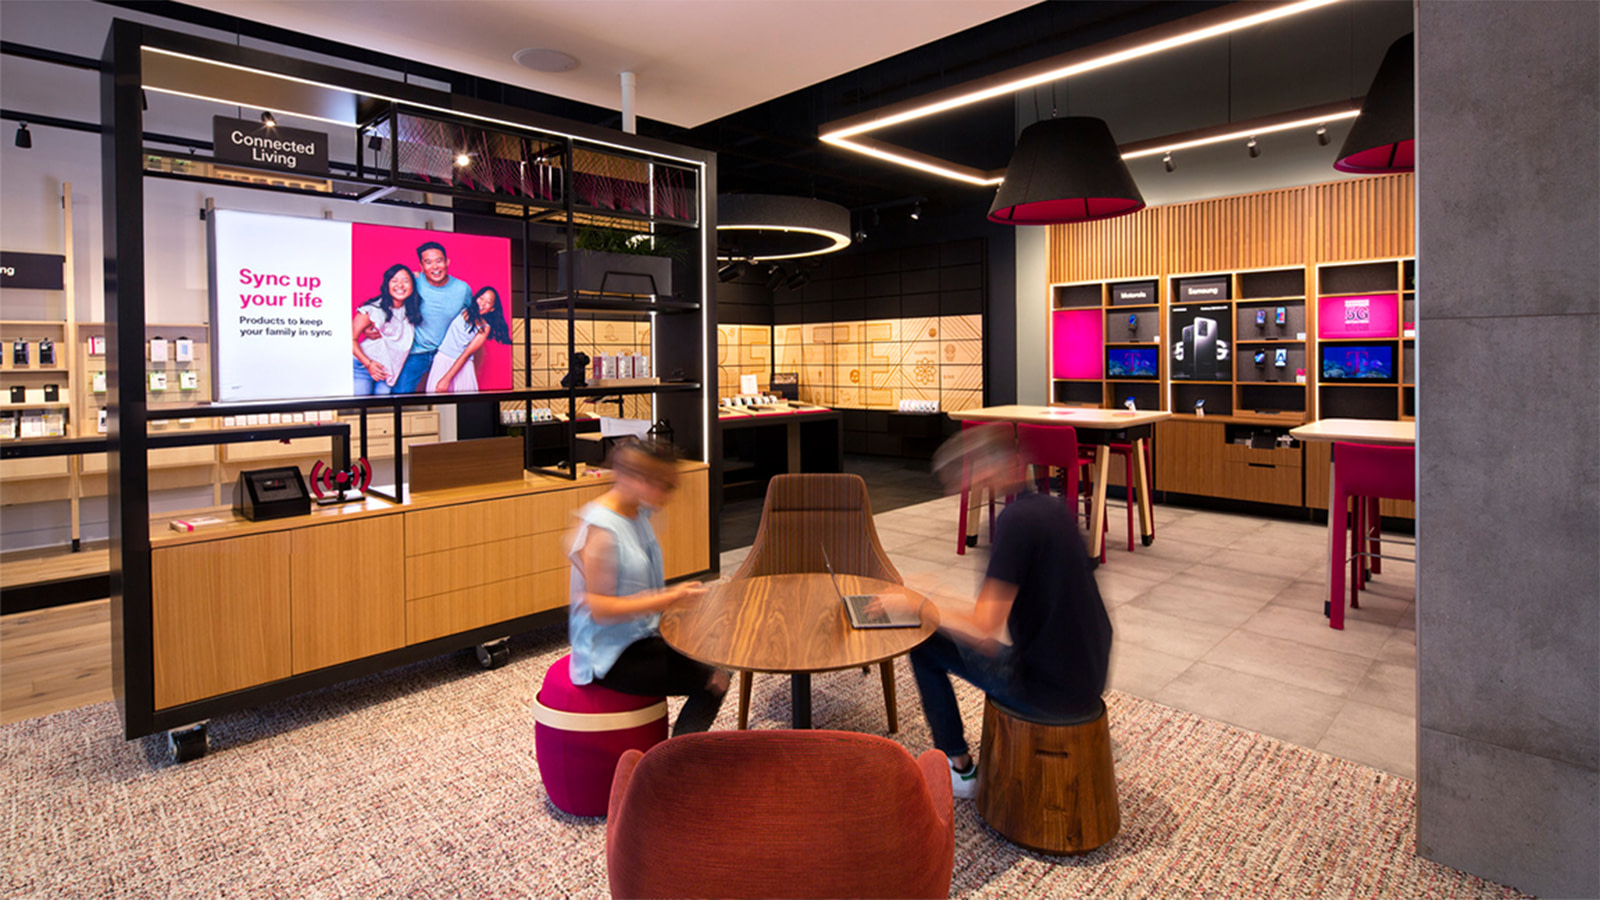 Guests visit a T-Mobile Experience Center